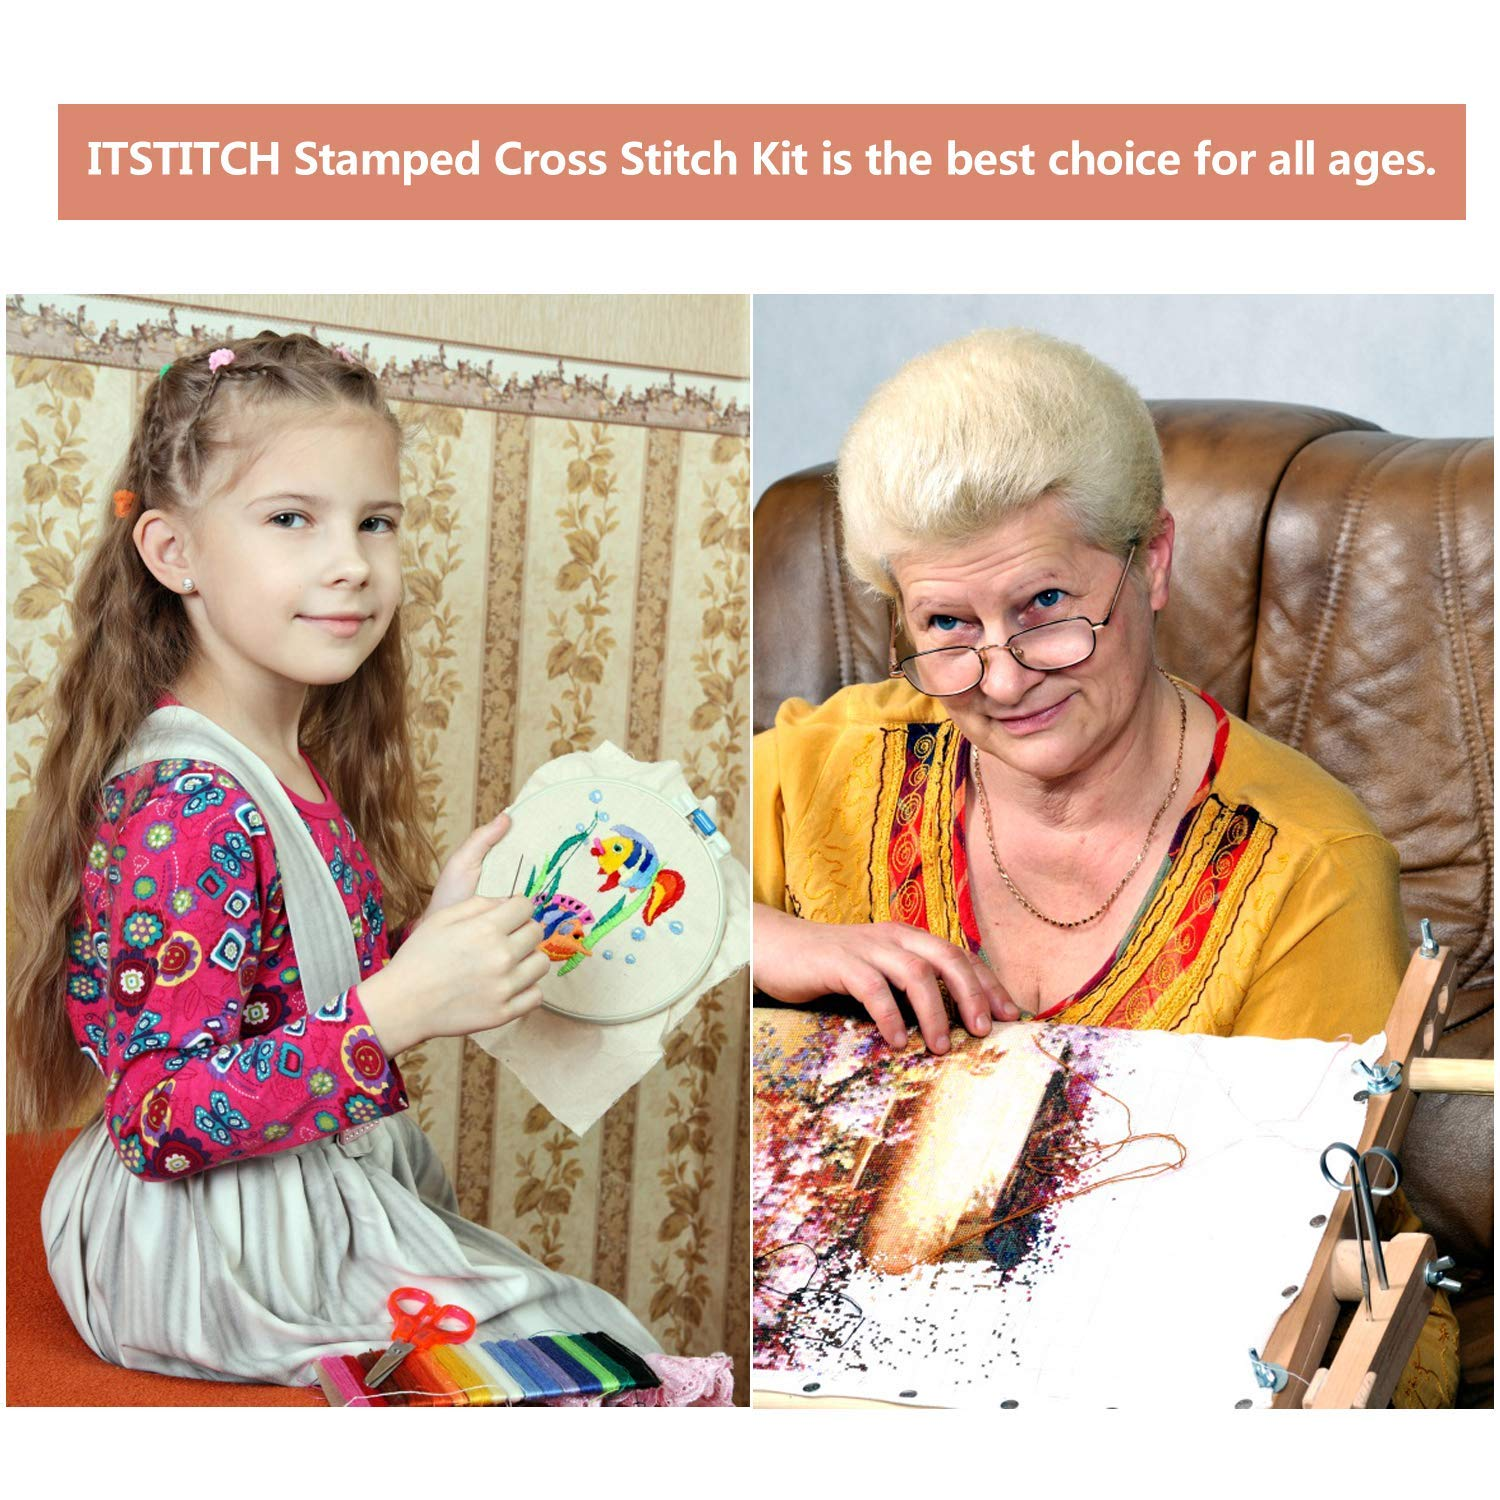 Embroidery Kits Needlepoint Crafts Starter Kits The Countryside Kits for Home Wall Decoration Cross Stitch Stamped Kits Pre-Printed Cross-Stitching with Patterns for Beginner Kids Adults